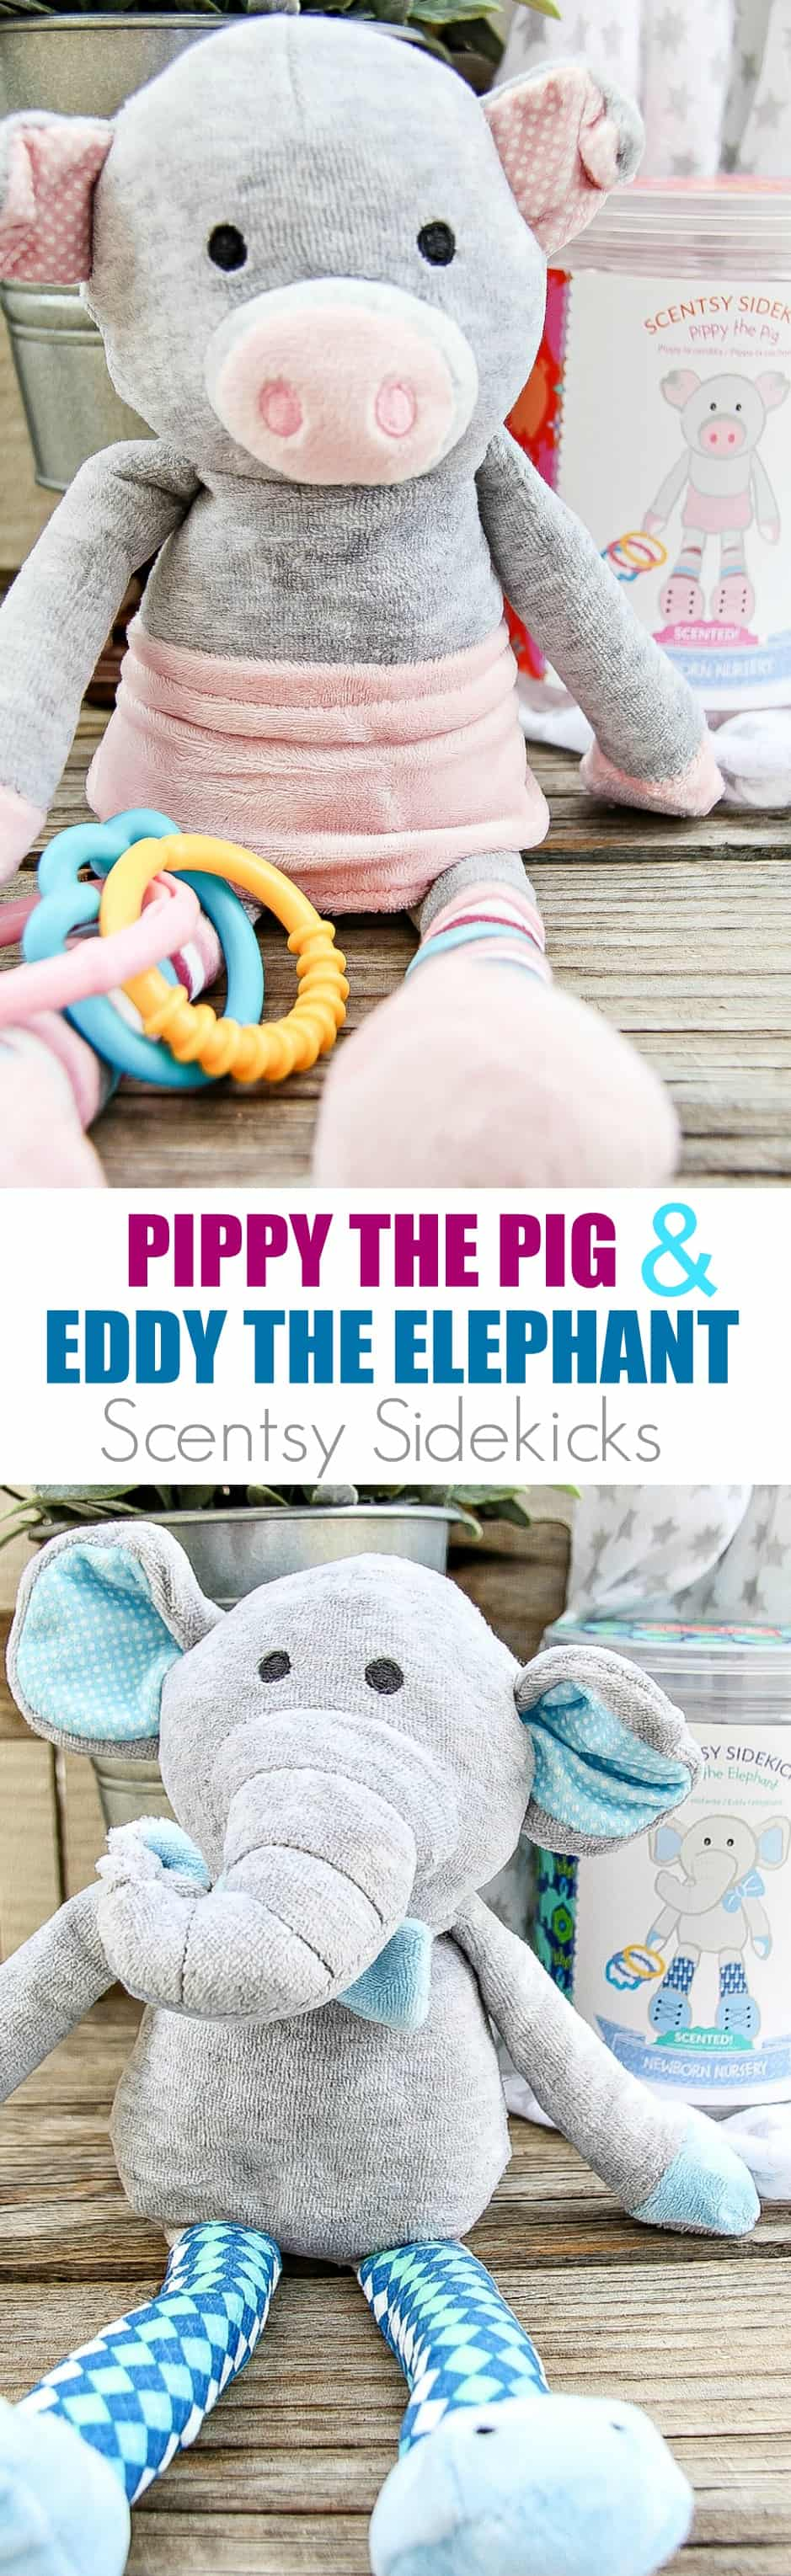 Scentsy Sidekicks make the perfect baby gift